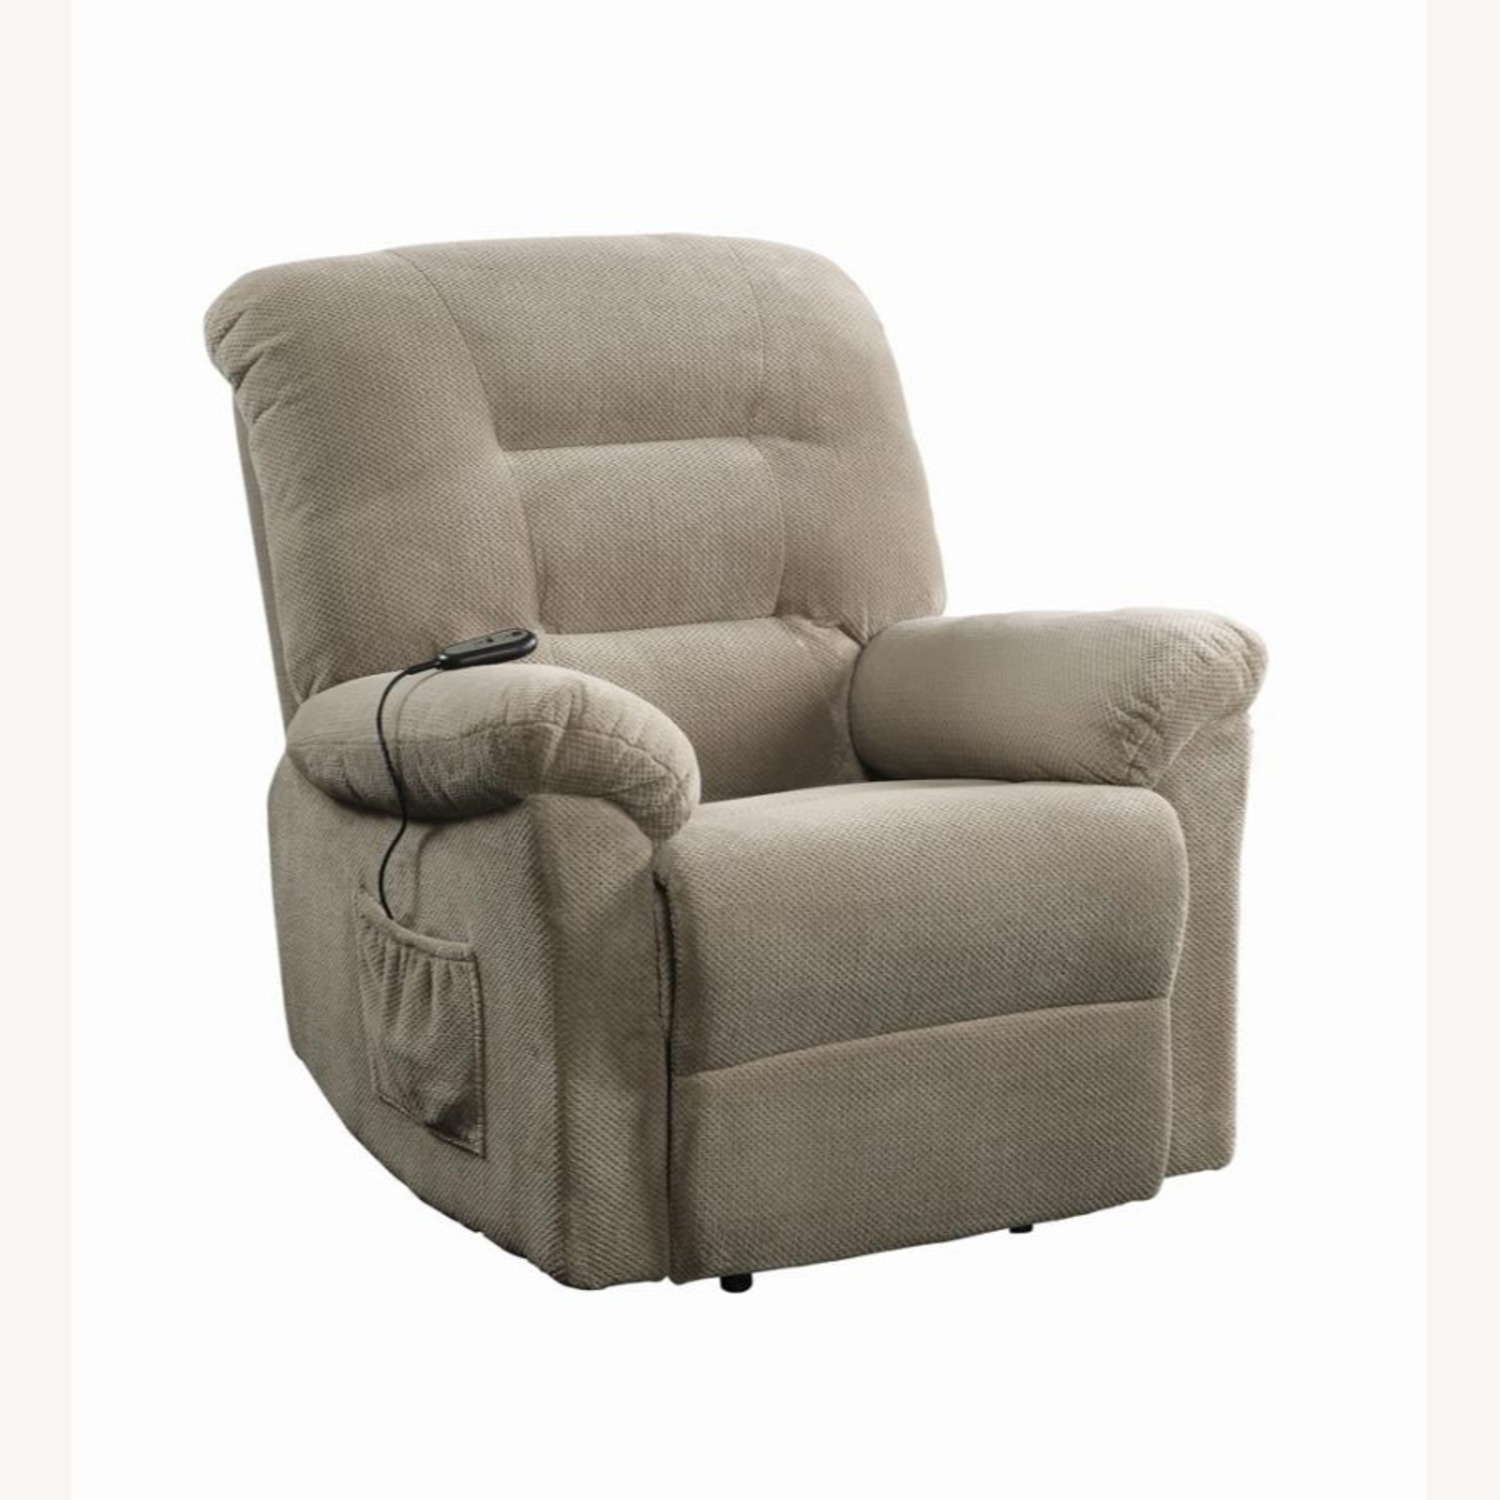 Power Lift Recliner In Beige Chenille Fabric - image-0